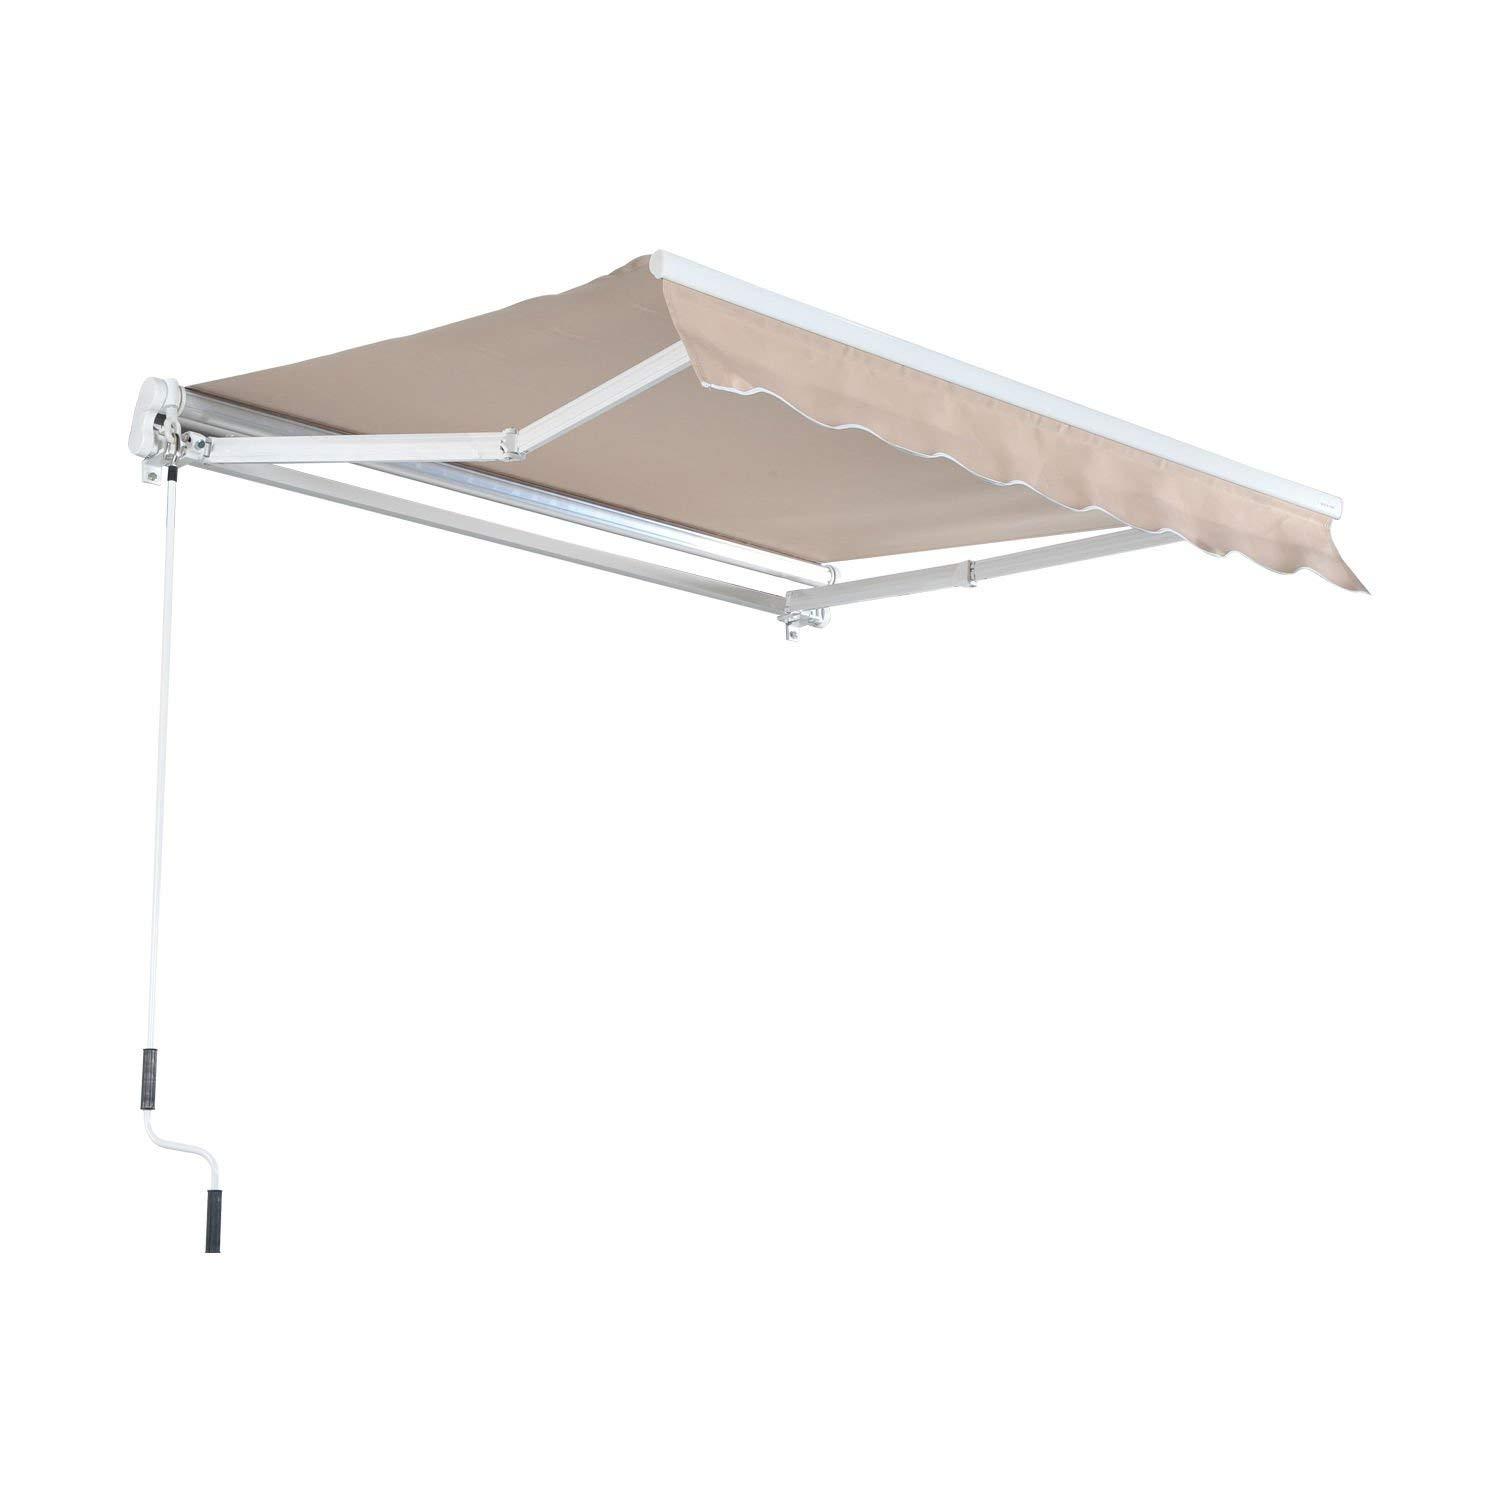 MCombo 13x8 10x8 12x10 FT Manual Retractable Patio Window Awning Commercial Grade - Quality 100% 280G Polyester Sunshade Shelter Outdoor Canopy Aluminum Frame (12x10 FT, Brown)